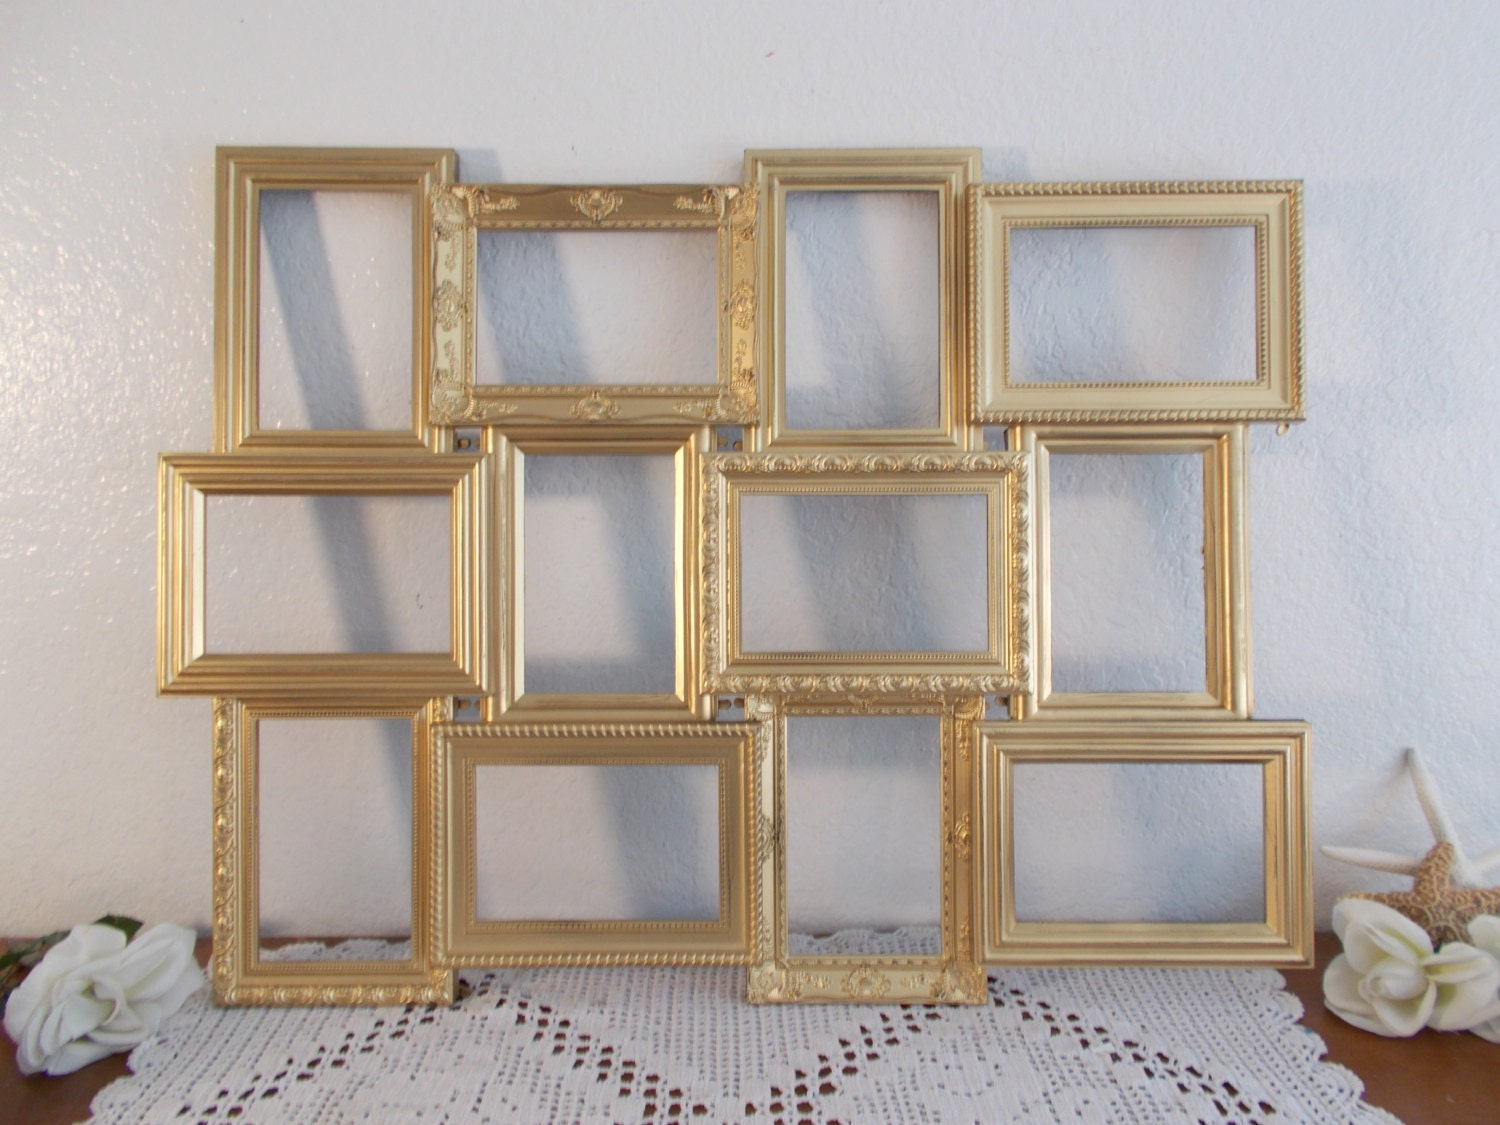 gold wedding seating chart collage frame ornate spring summer wedding reception centerpieces table decorations for a wedding reception